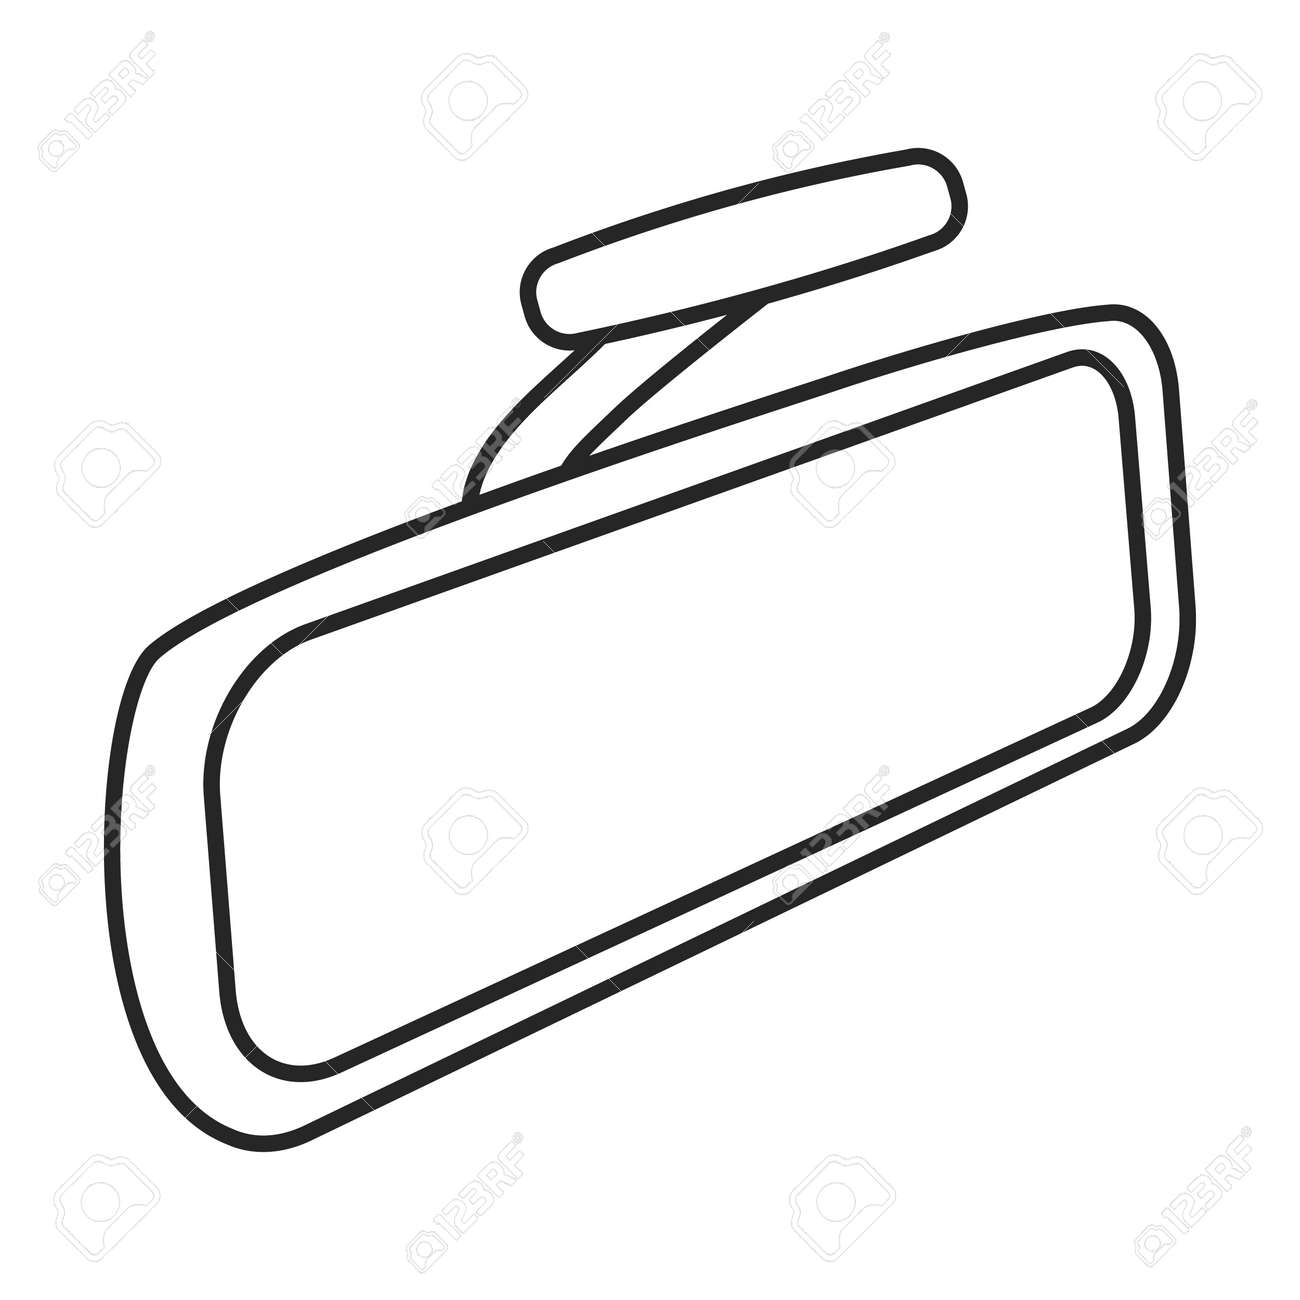 Mirror rear view car, vector outline icon. Vector illustration auto rearview on white background. Isolated outline illustration icon of mirror rear view. - 168841055